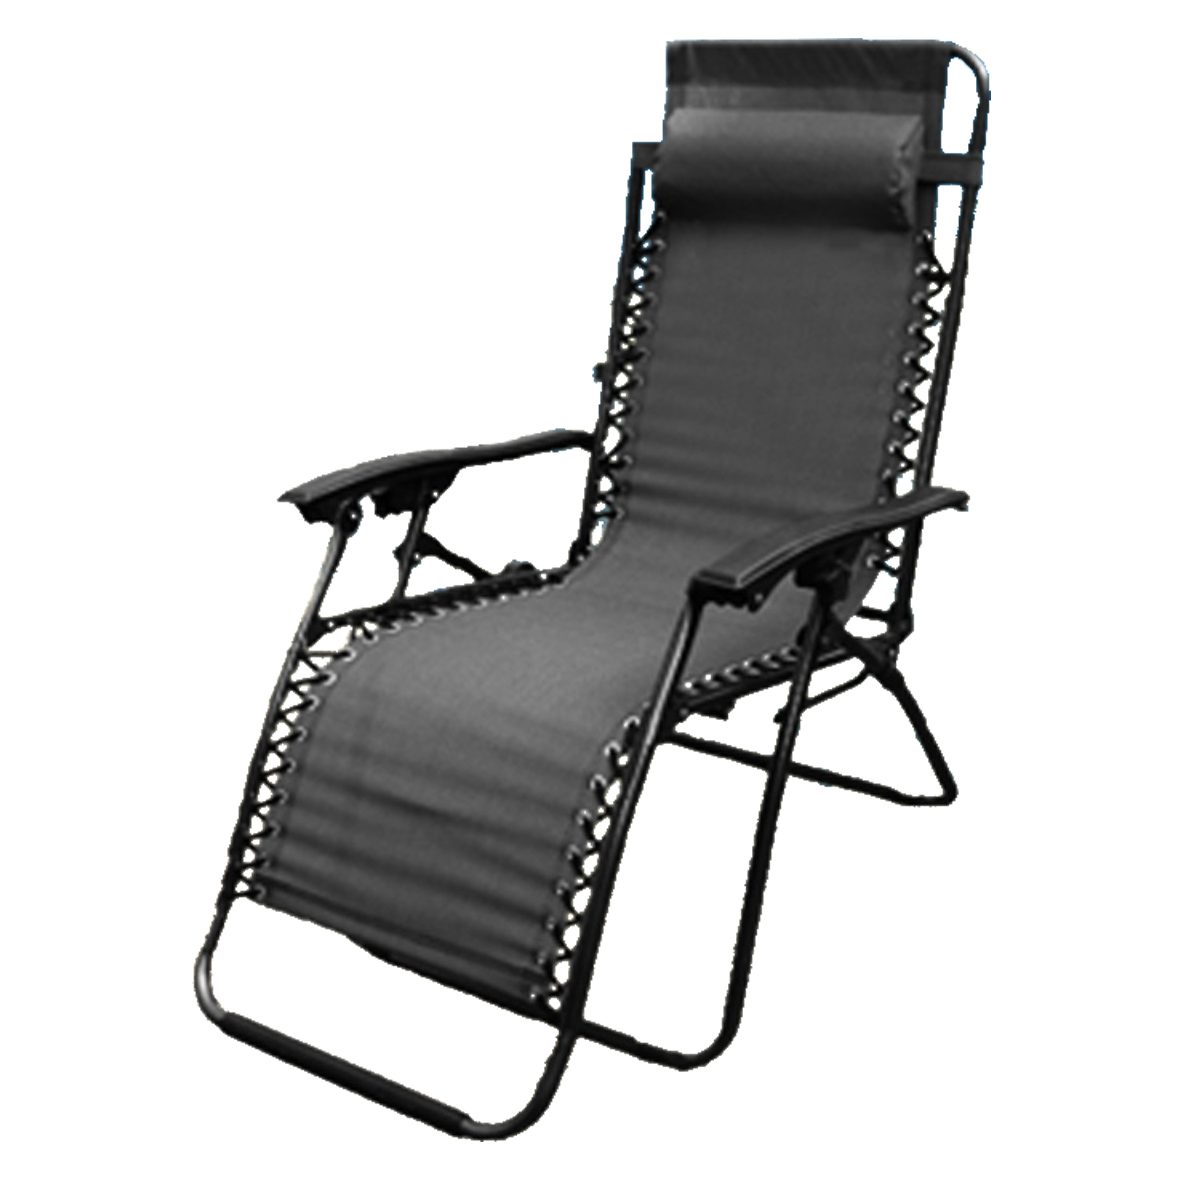 Camping Lounge Chair New Zero Gravity Garden Reclining Recliner Relaxer Lounger